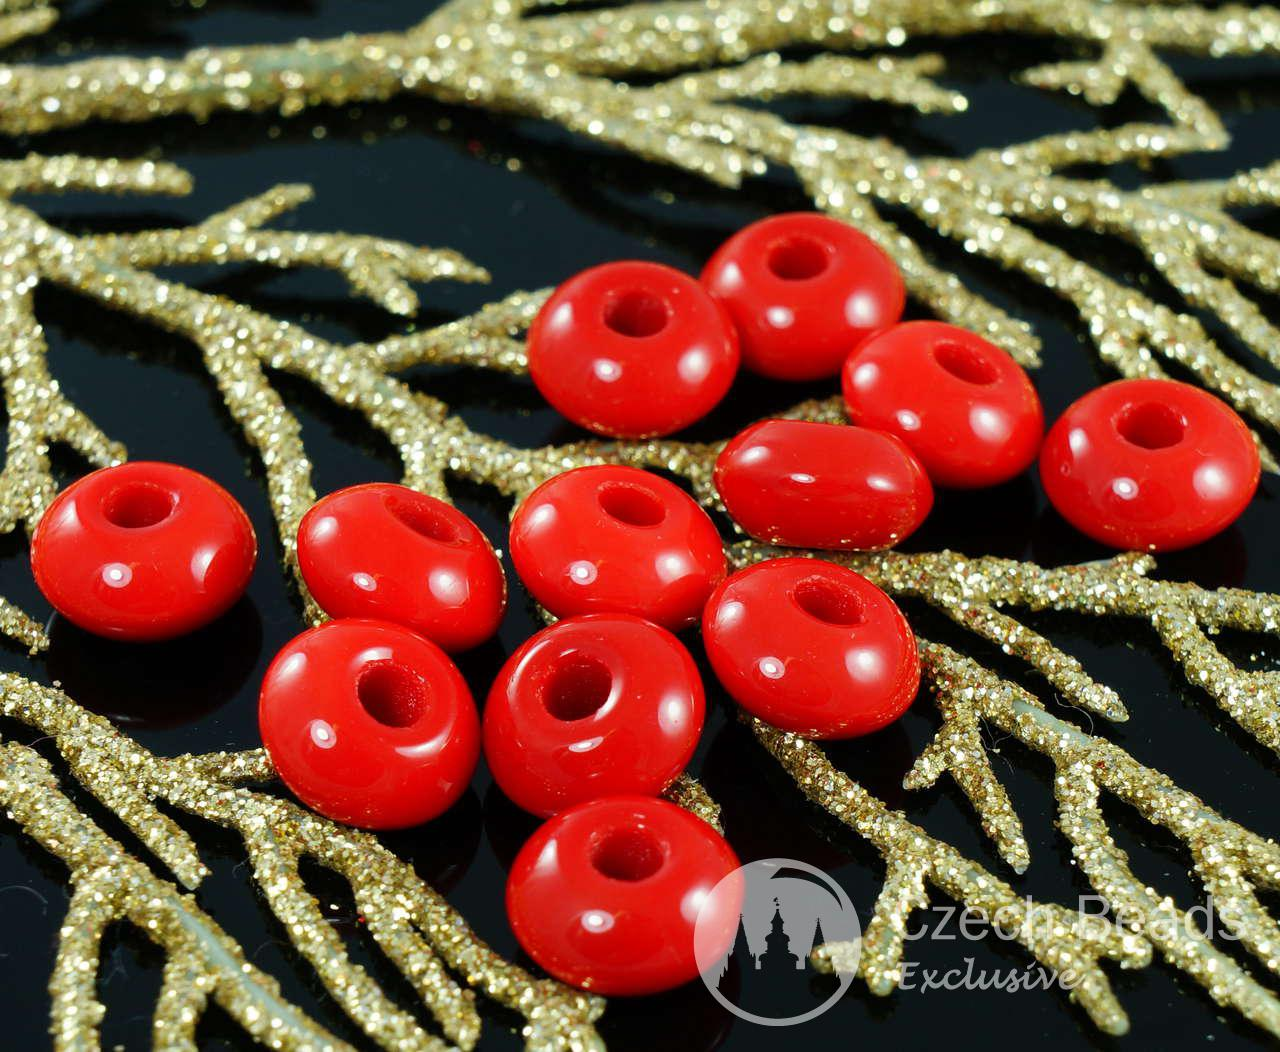 Red Large Hole Roller Pony Ring Crow Beads 11mm x 6mm 10pcs for $2.36 from Czech Beads Exclusive